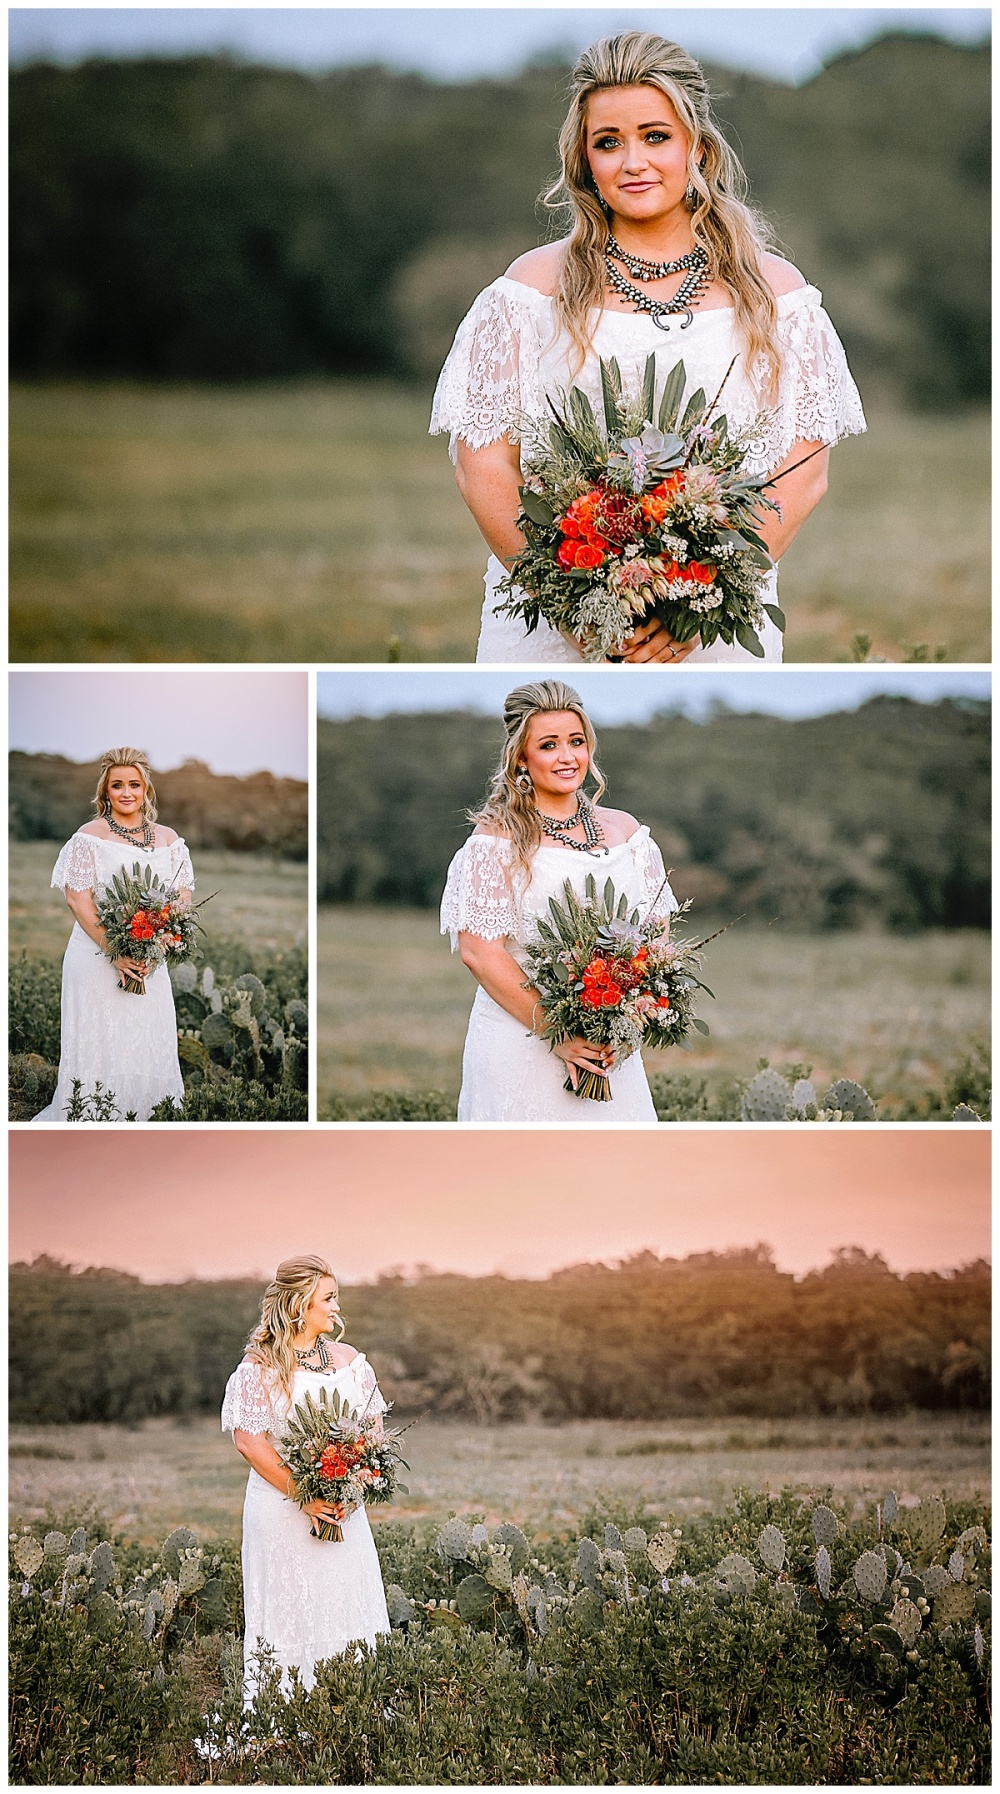 Carly-Barton-Photography-Whitehall-Polley-Mansion-Sutherland-Springs-Texas-Wedding-Bridals-Caitlin_0011.jpg